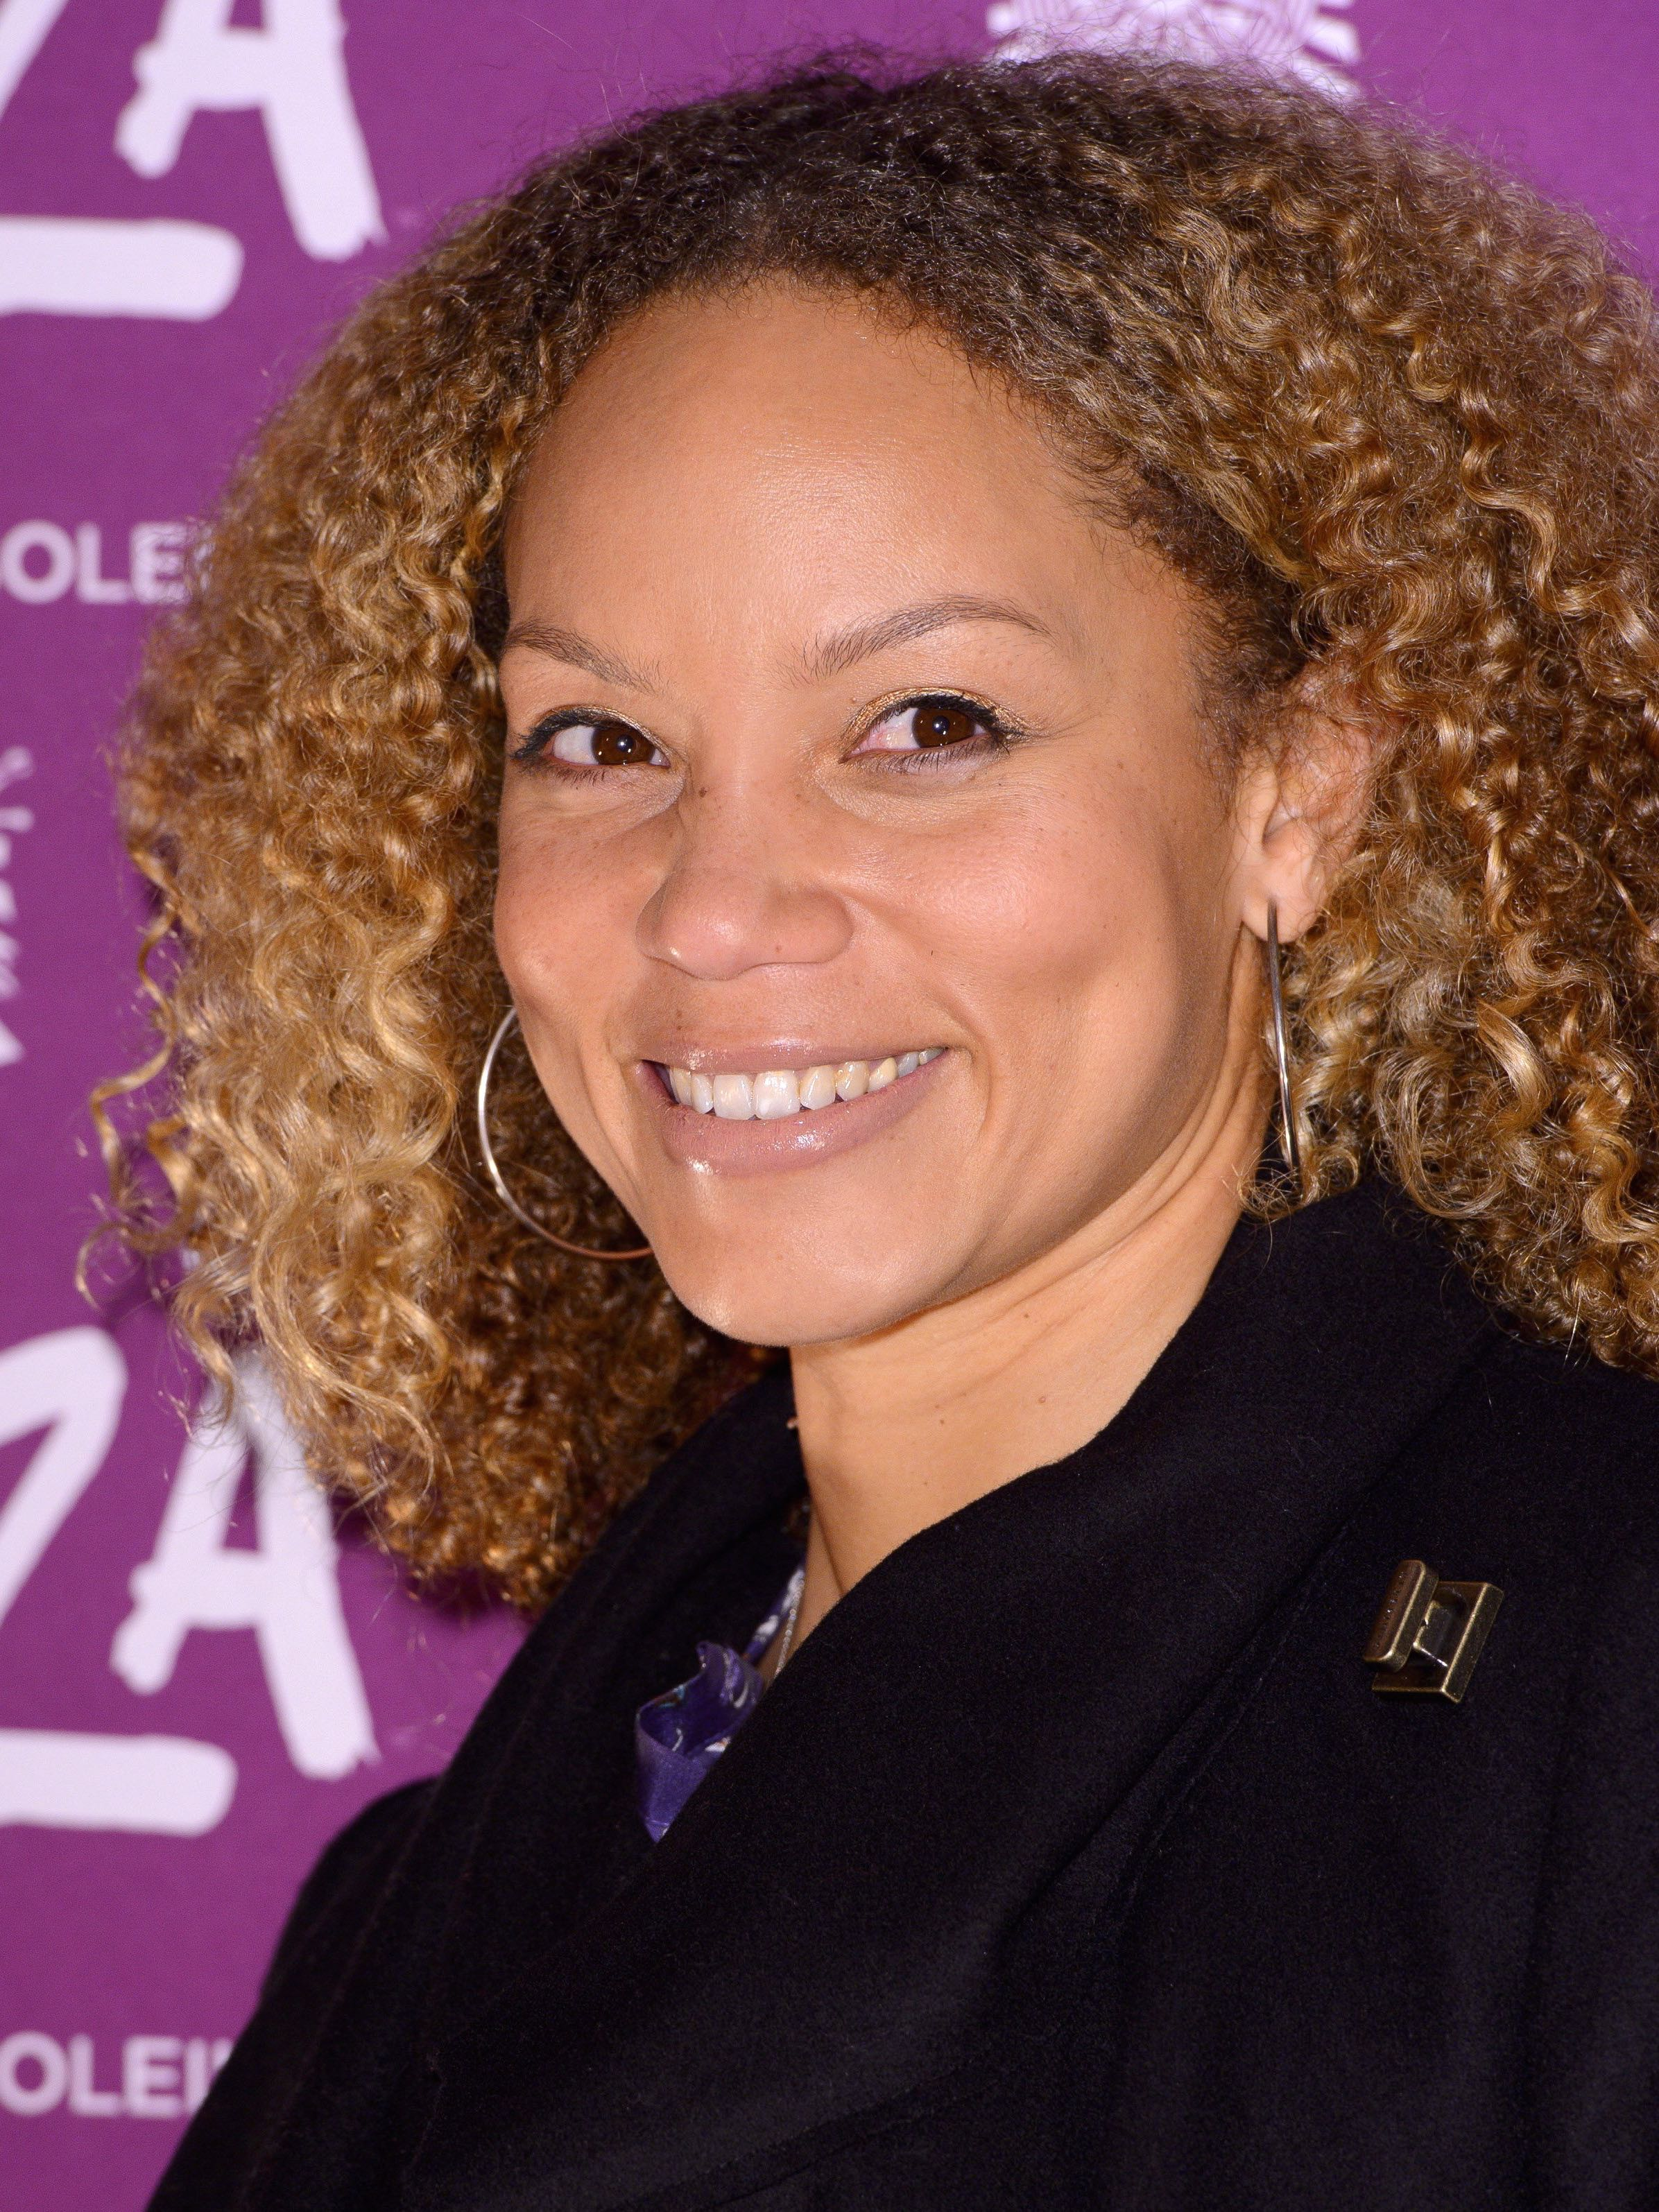 Angela Griffin (born 1976)